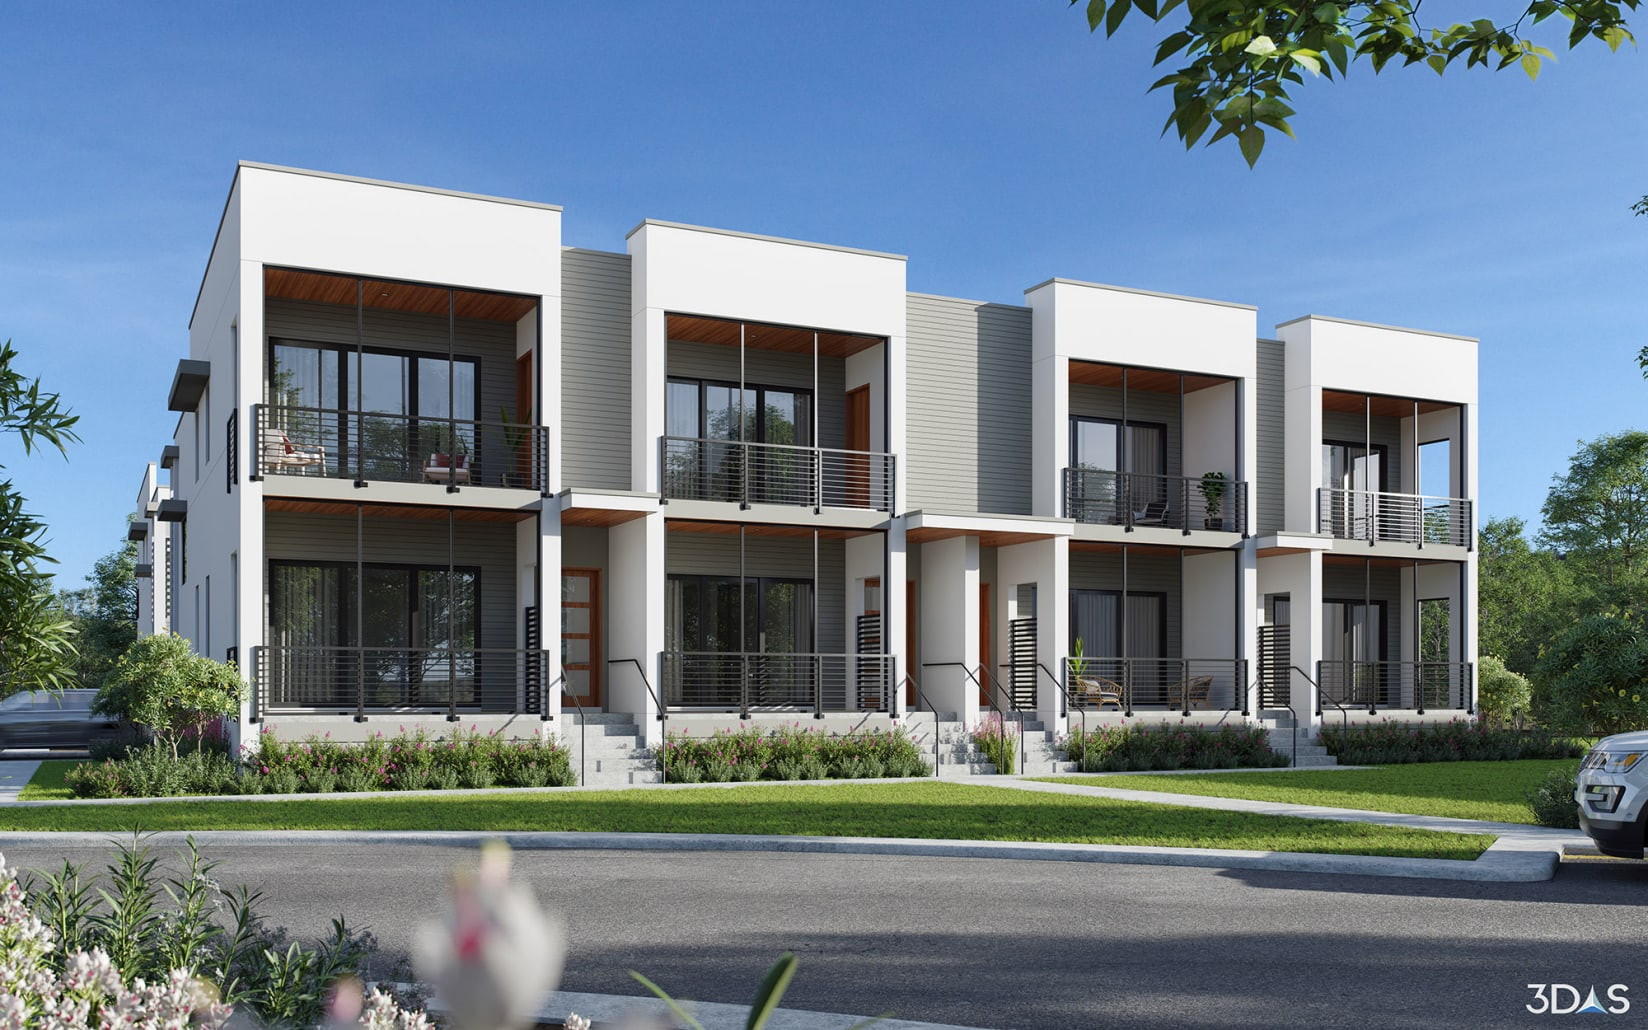 Located at 5247 Desoto Road in Sarasota, Florida. Daytime 2-Story 3D rendering exterior is for Grande Oaks Preserve townhomes.